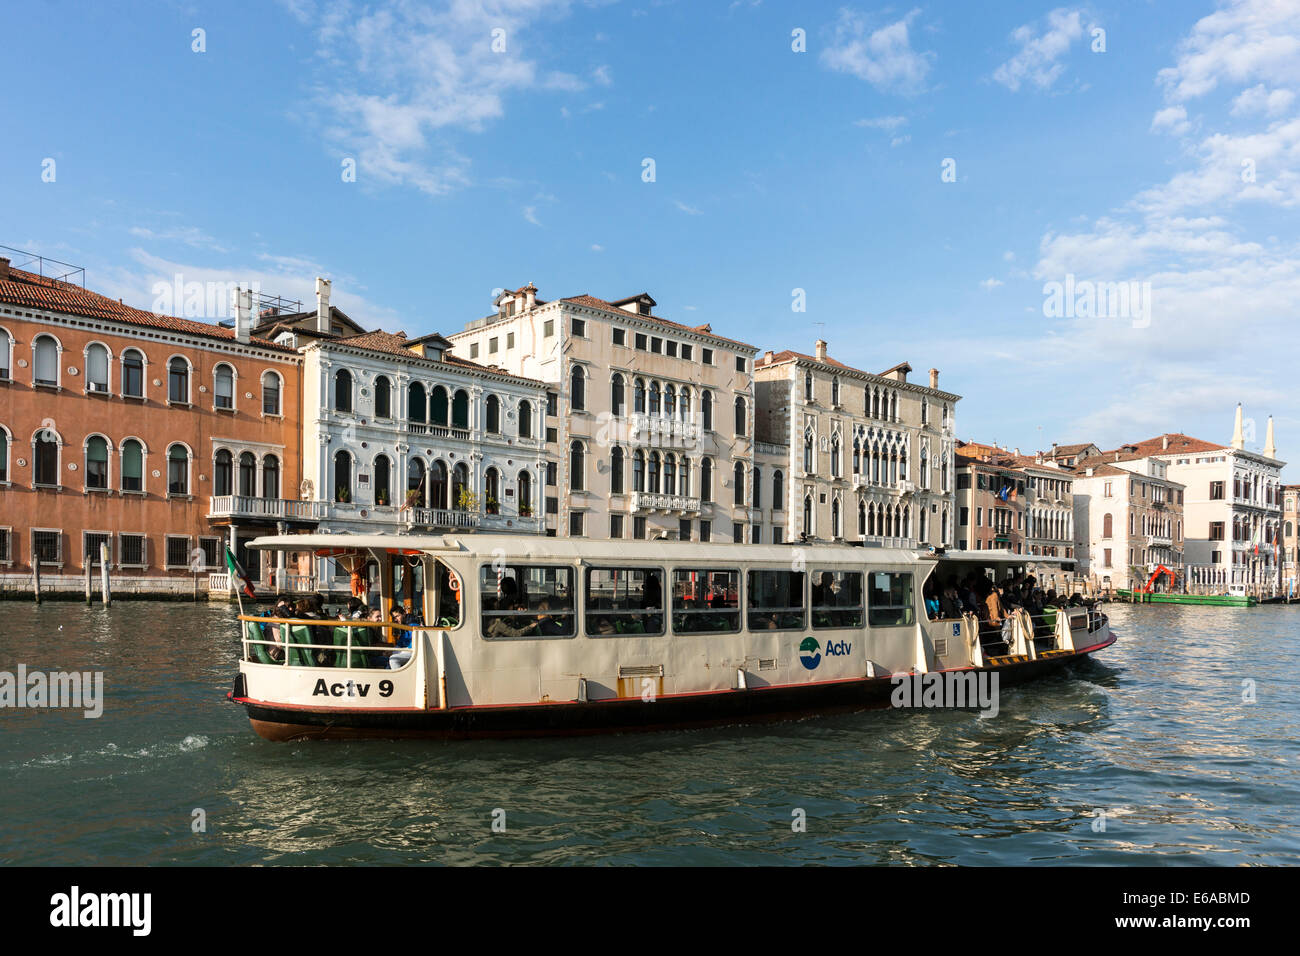 A vaparetto water bus on the Grand Canal in Venice. - Stock Image